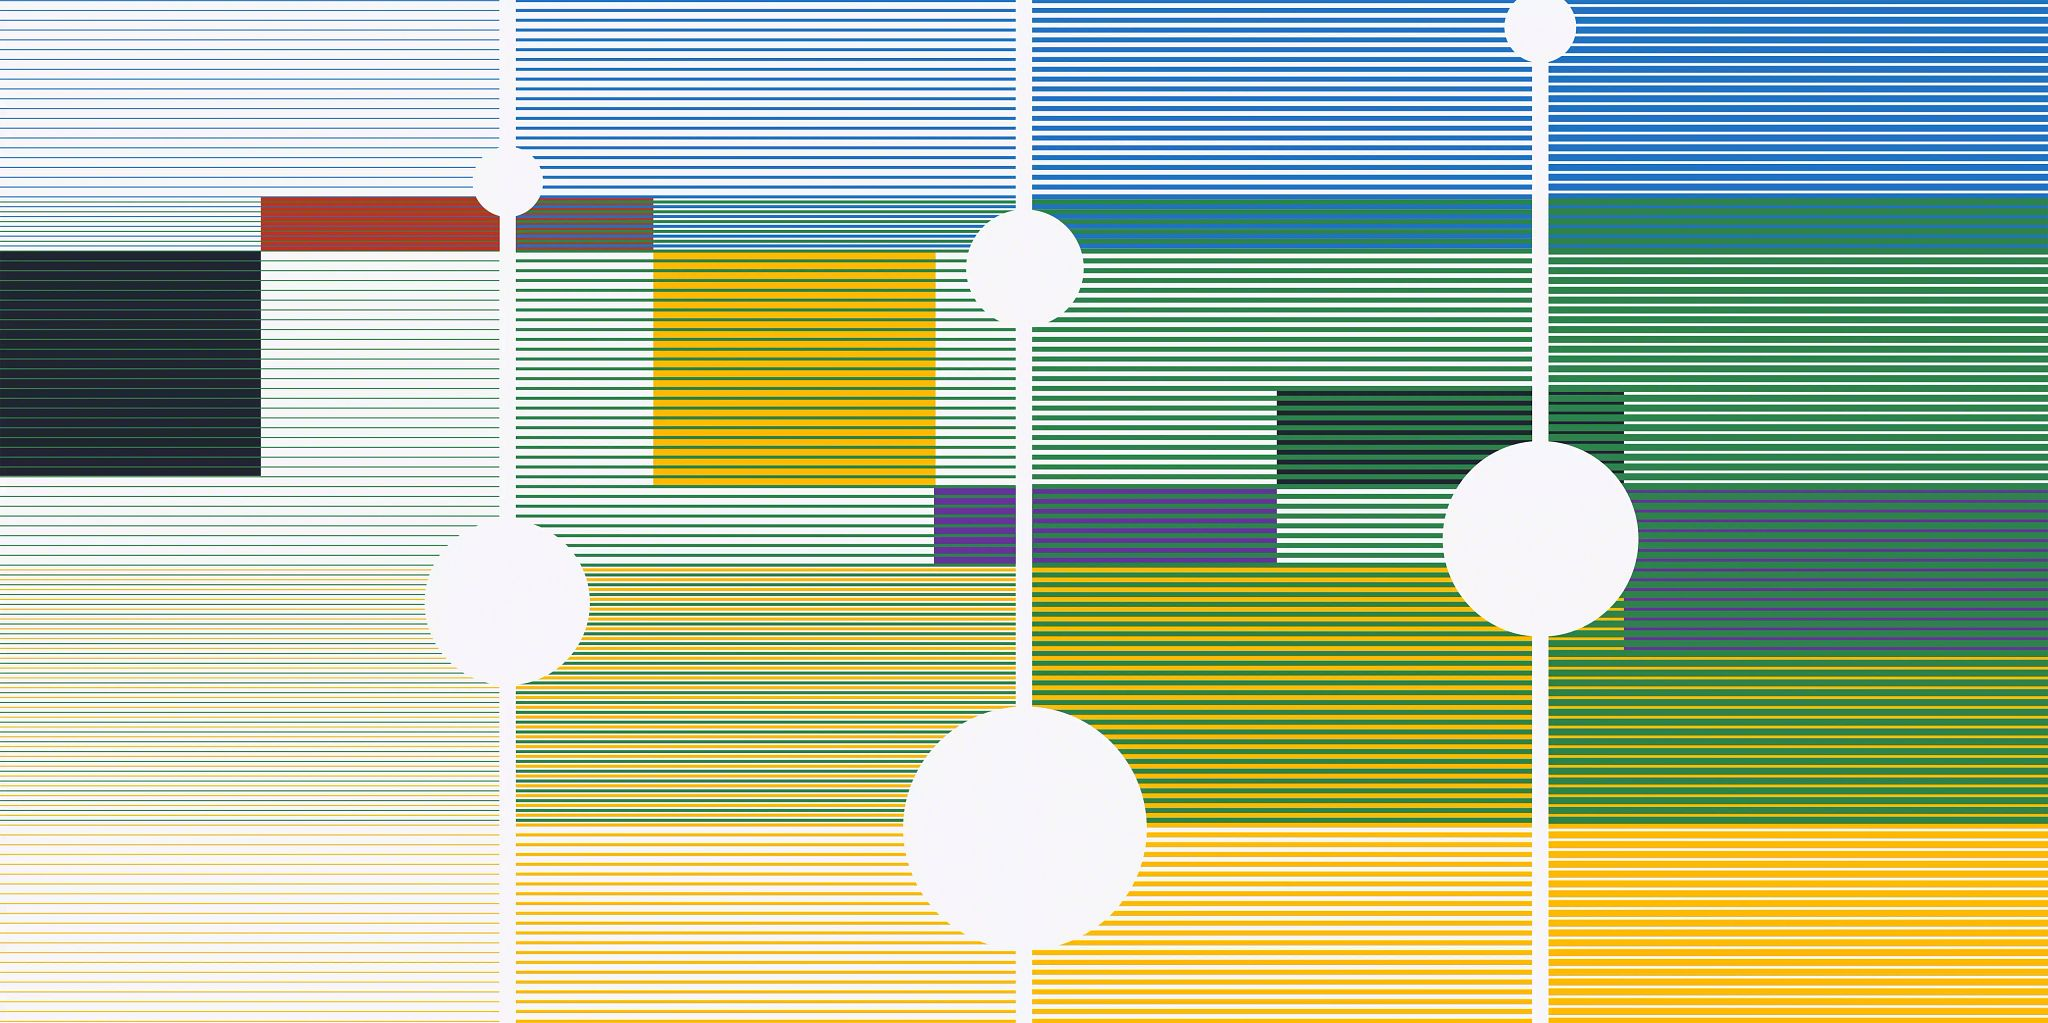 """A colorful graphic broken into four vertical sections with thin horizontal lines going across each section creating a sort of """"blur"""" effect on the background graphics."""